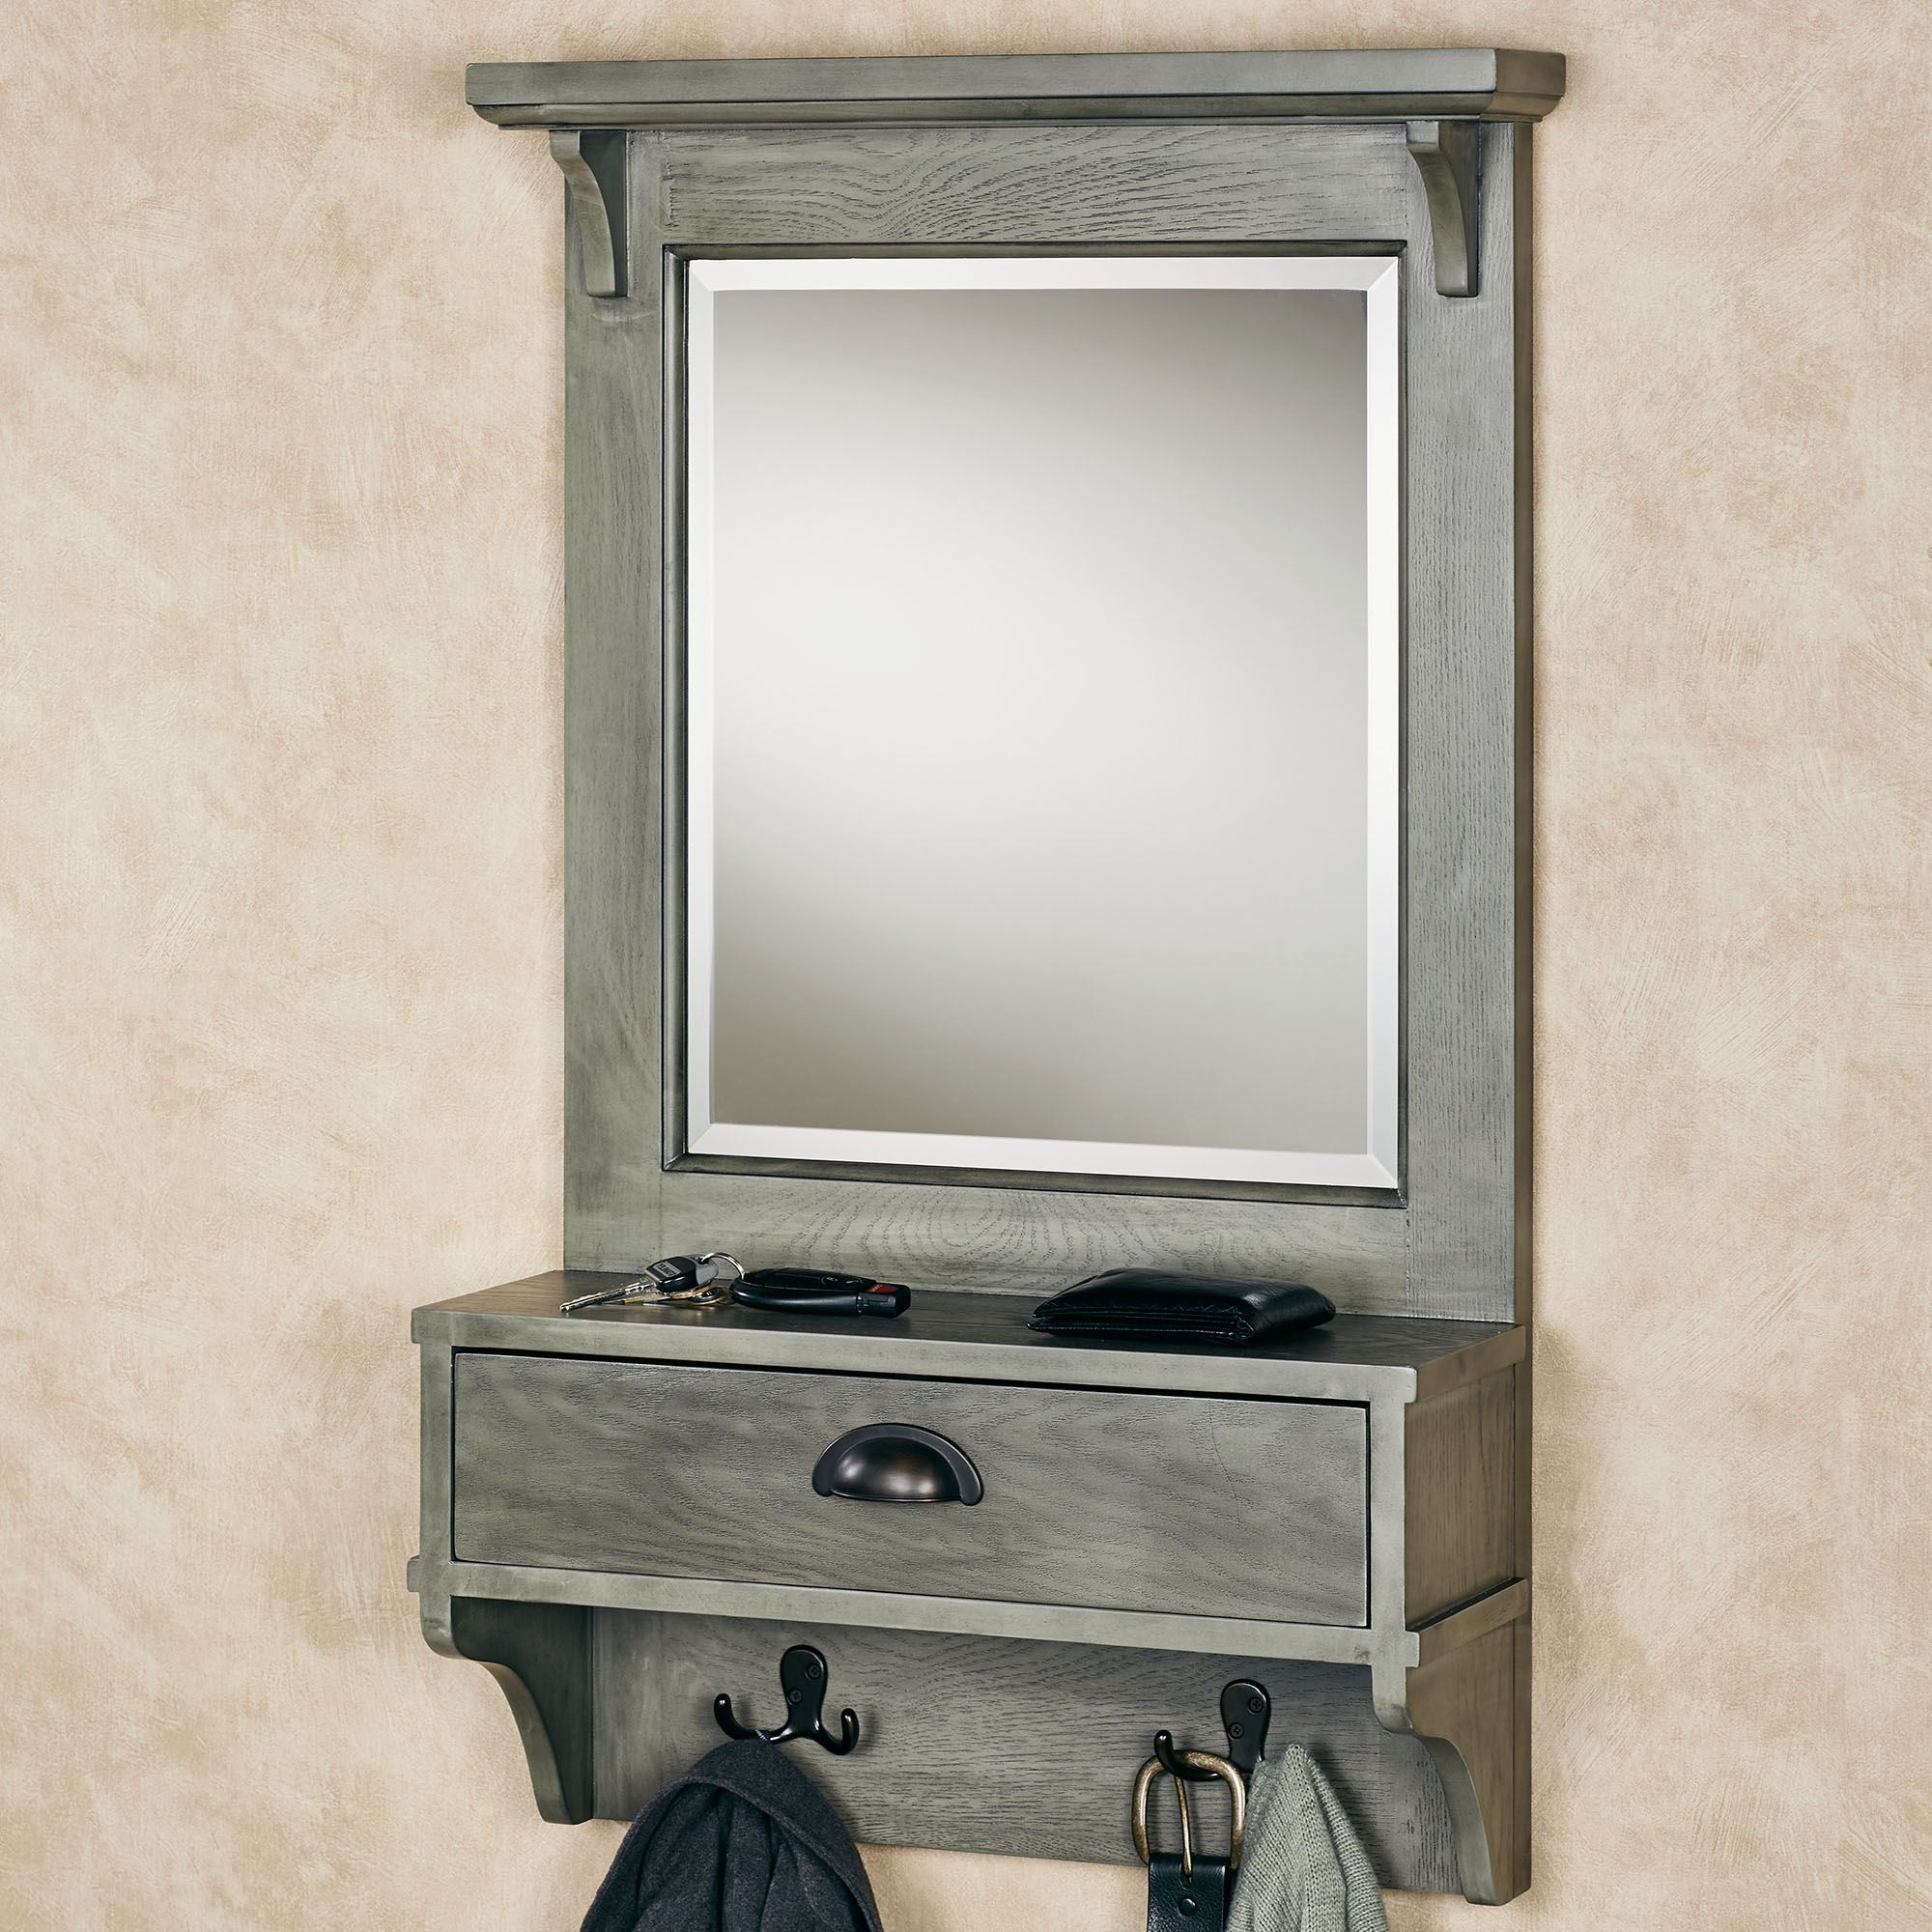 2019 Wall Mirrors With Drawers For Karter Gray Mirrored Wall Shelf With Drawer And Hooks (View 7 of 20)